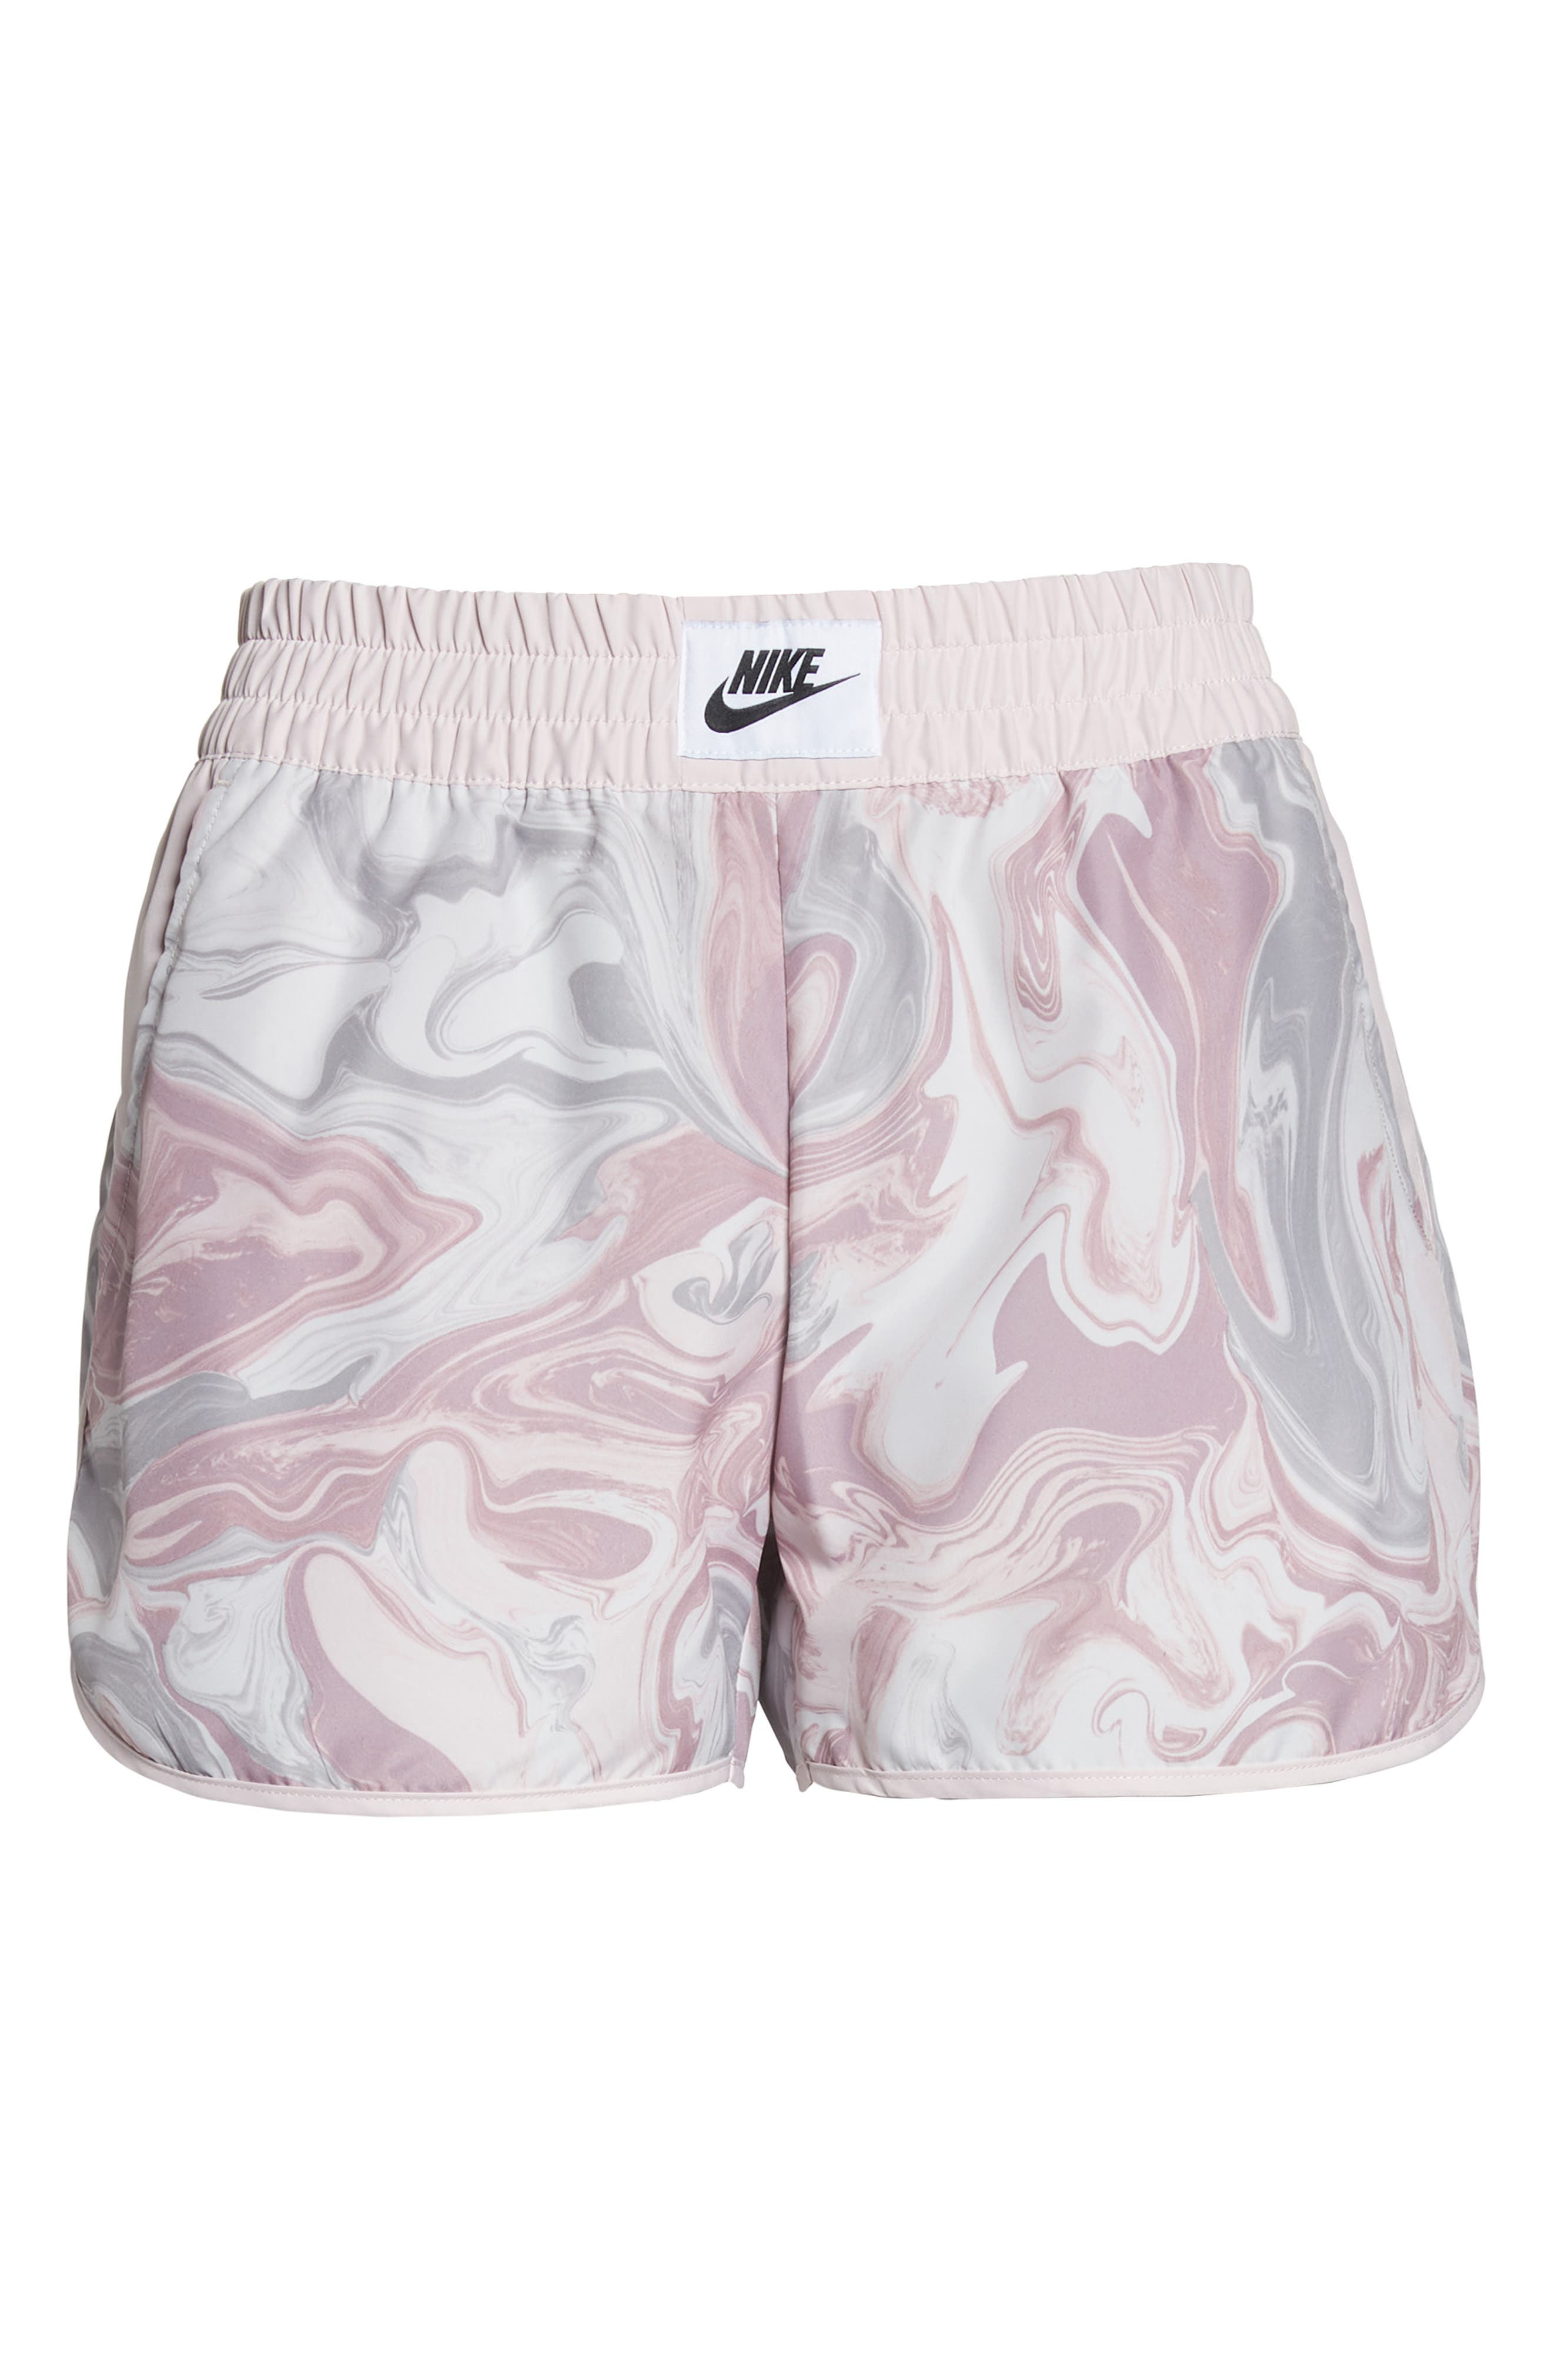 Sportswear Woven Shorts,                             Alternate thumbnail 7, color,                             ELEMENTAL ROSE/ BARELY ROSE